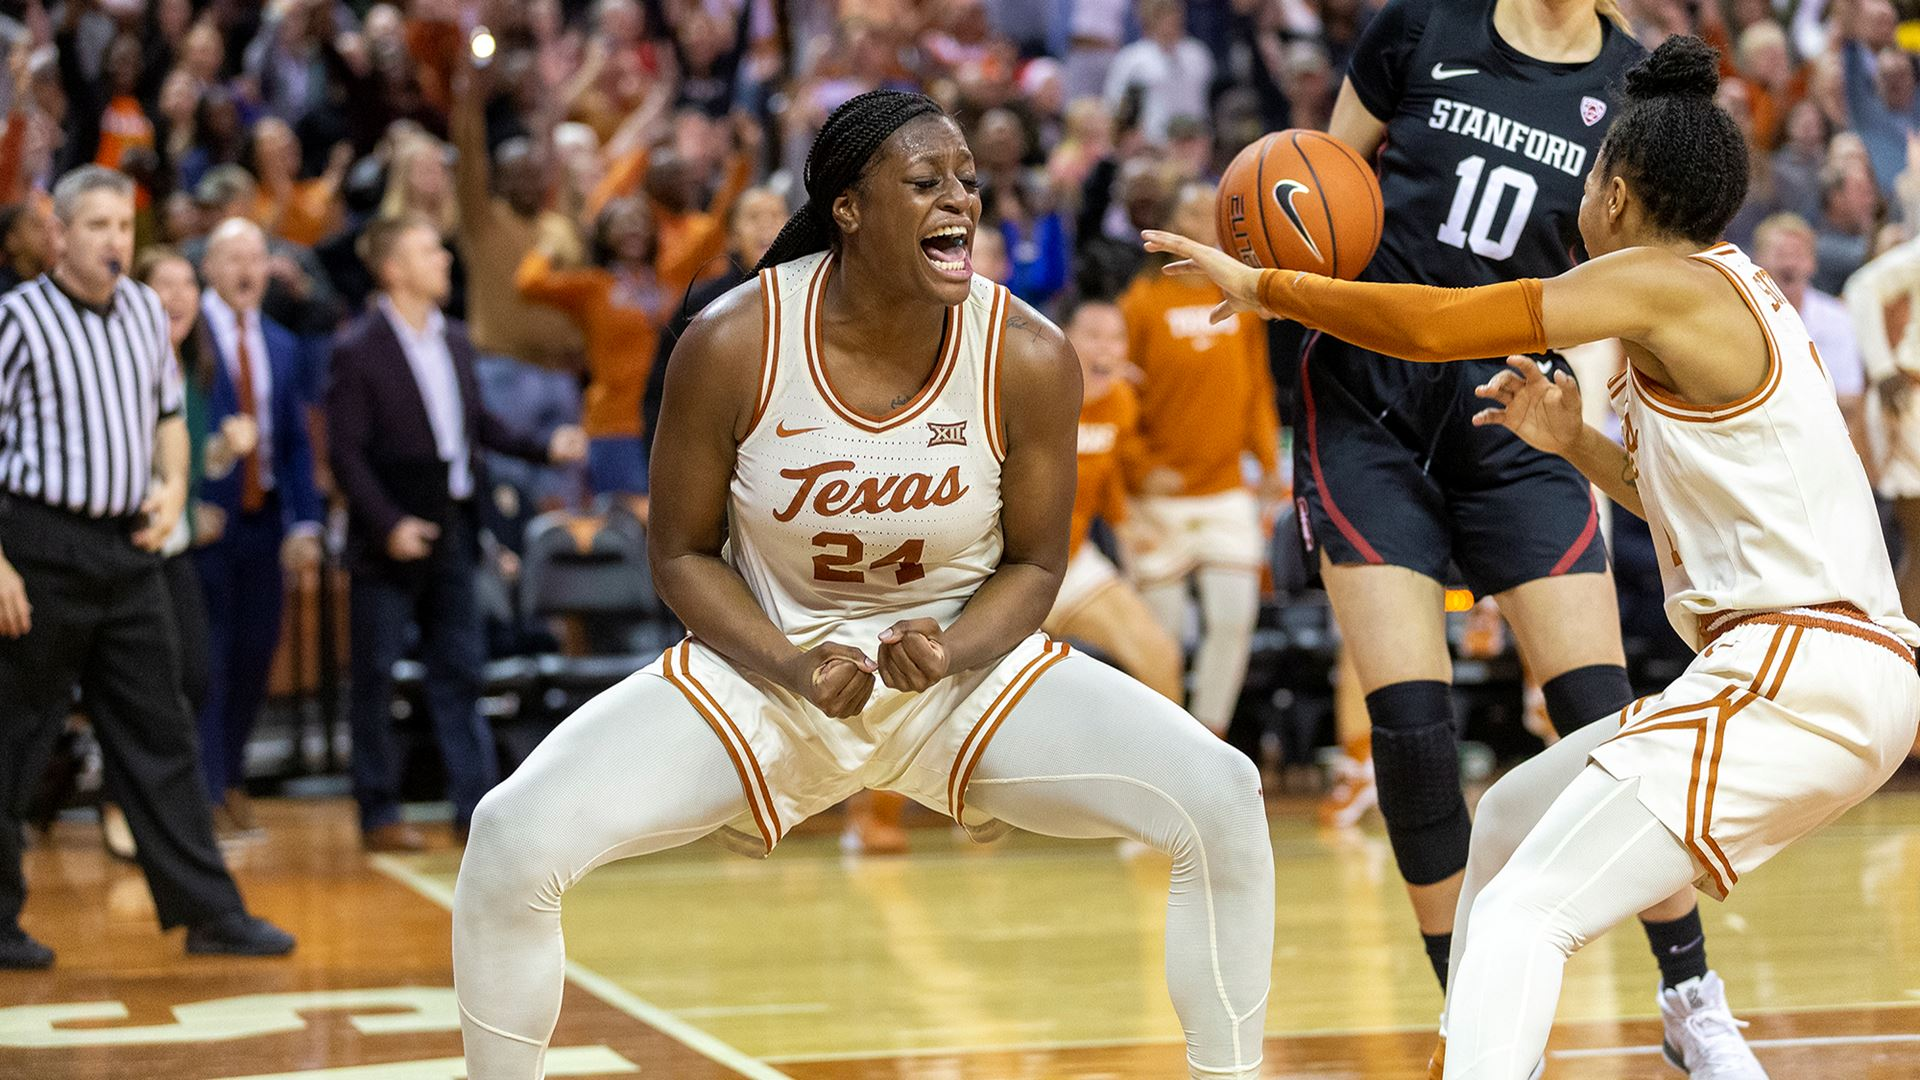 STI/Hoopfeed Poll: Stanford tumbles, Texas re-enters and Arizona continues to rise